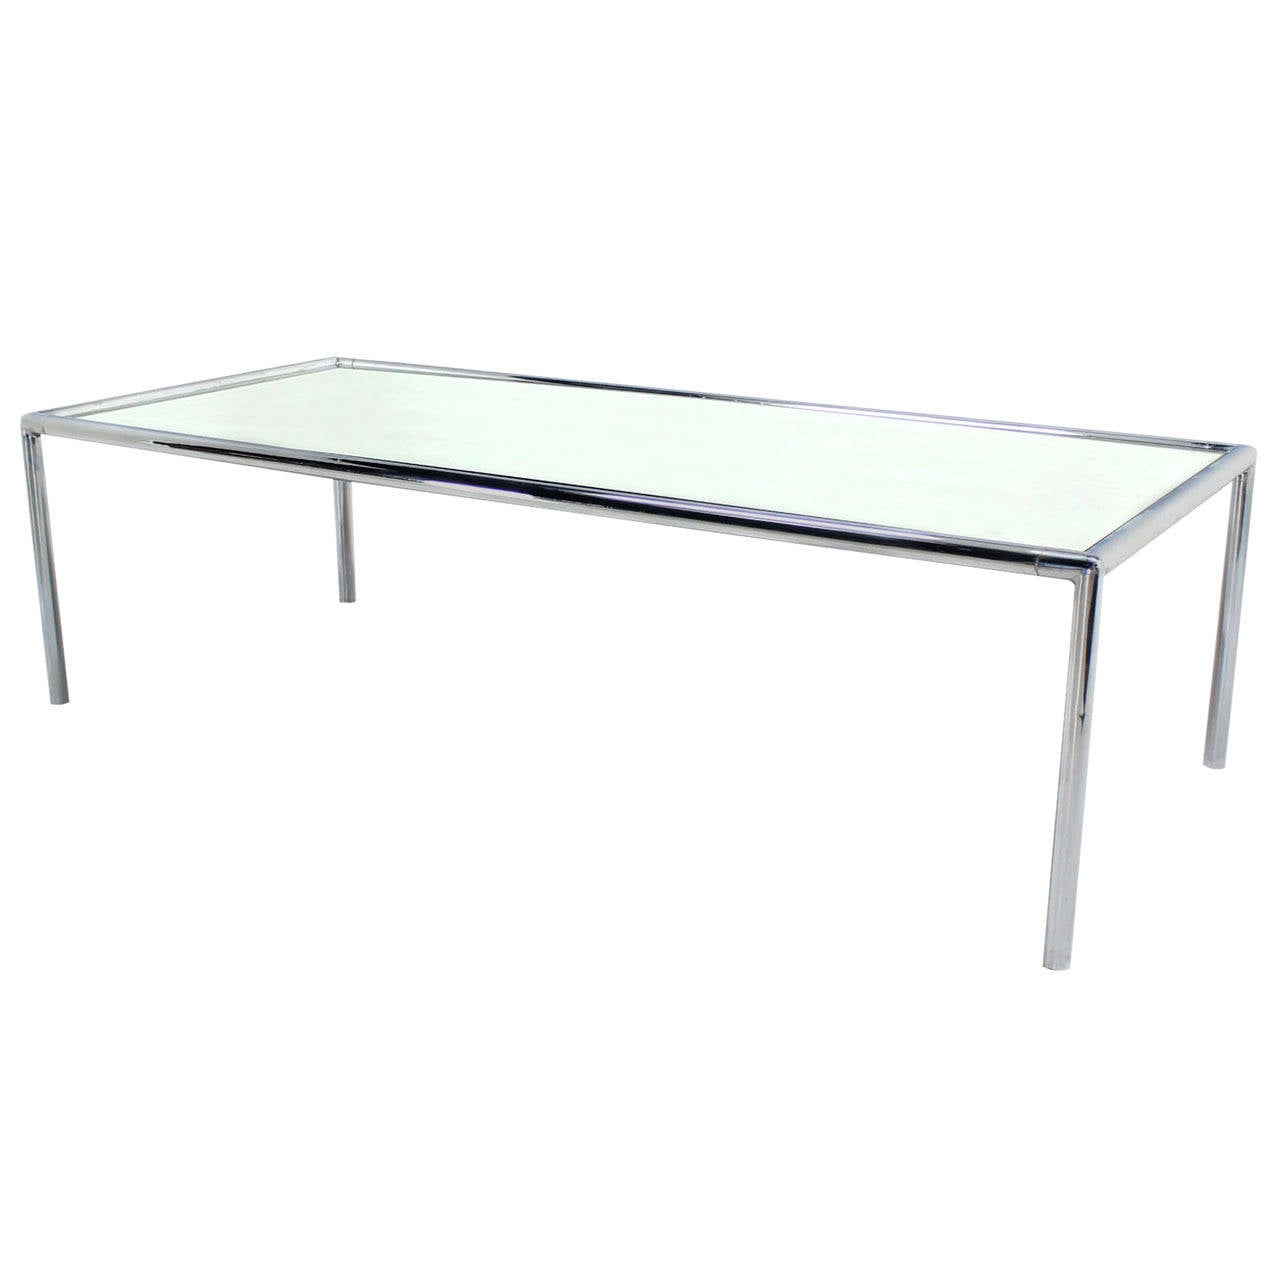 Long Dining Table For Sale Extra Long Chrome Tubular Design Dining Or Conference